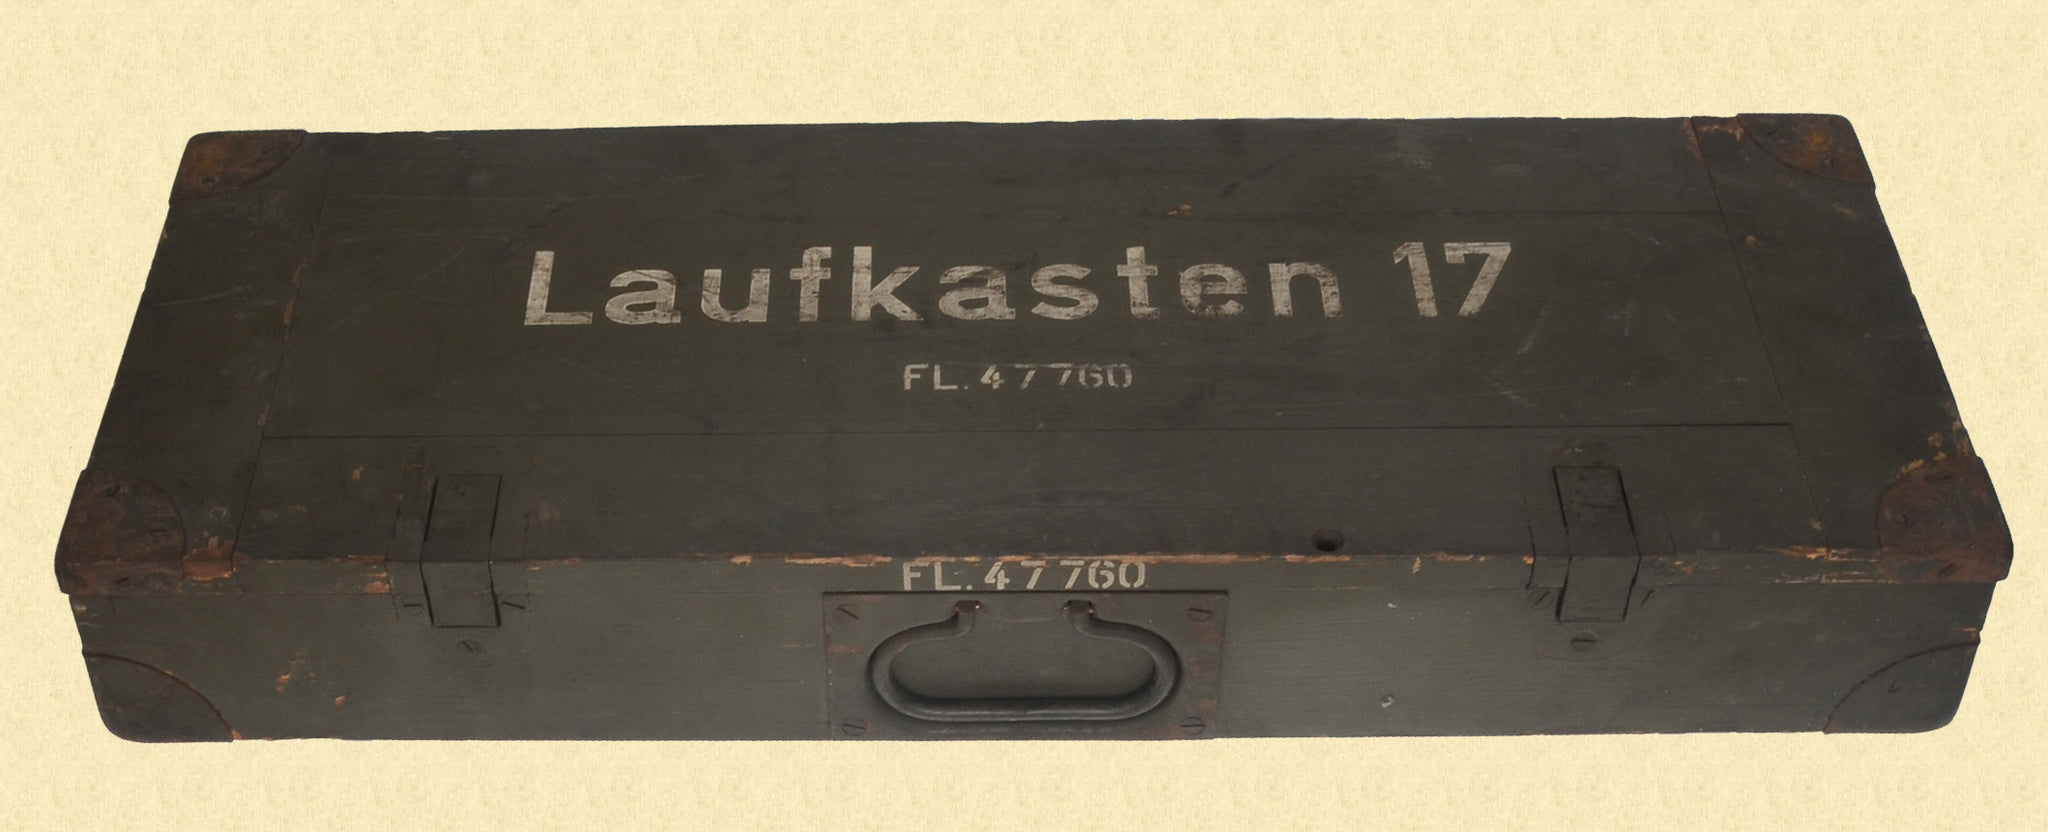 GERMAN WW2 LUFTWAFFE MG BARREL TRANSIT BOX